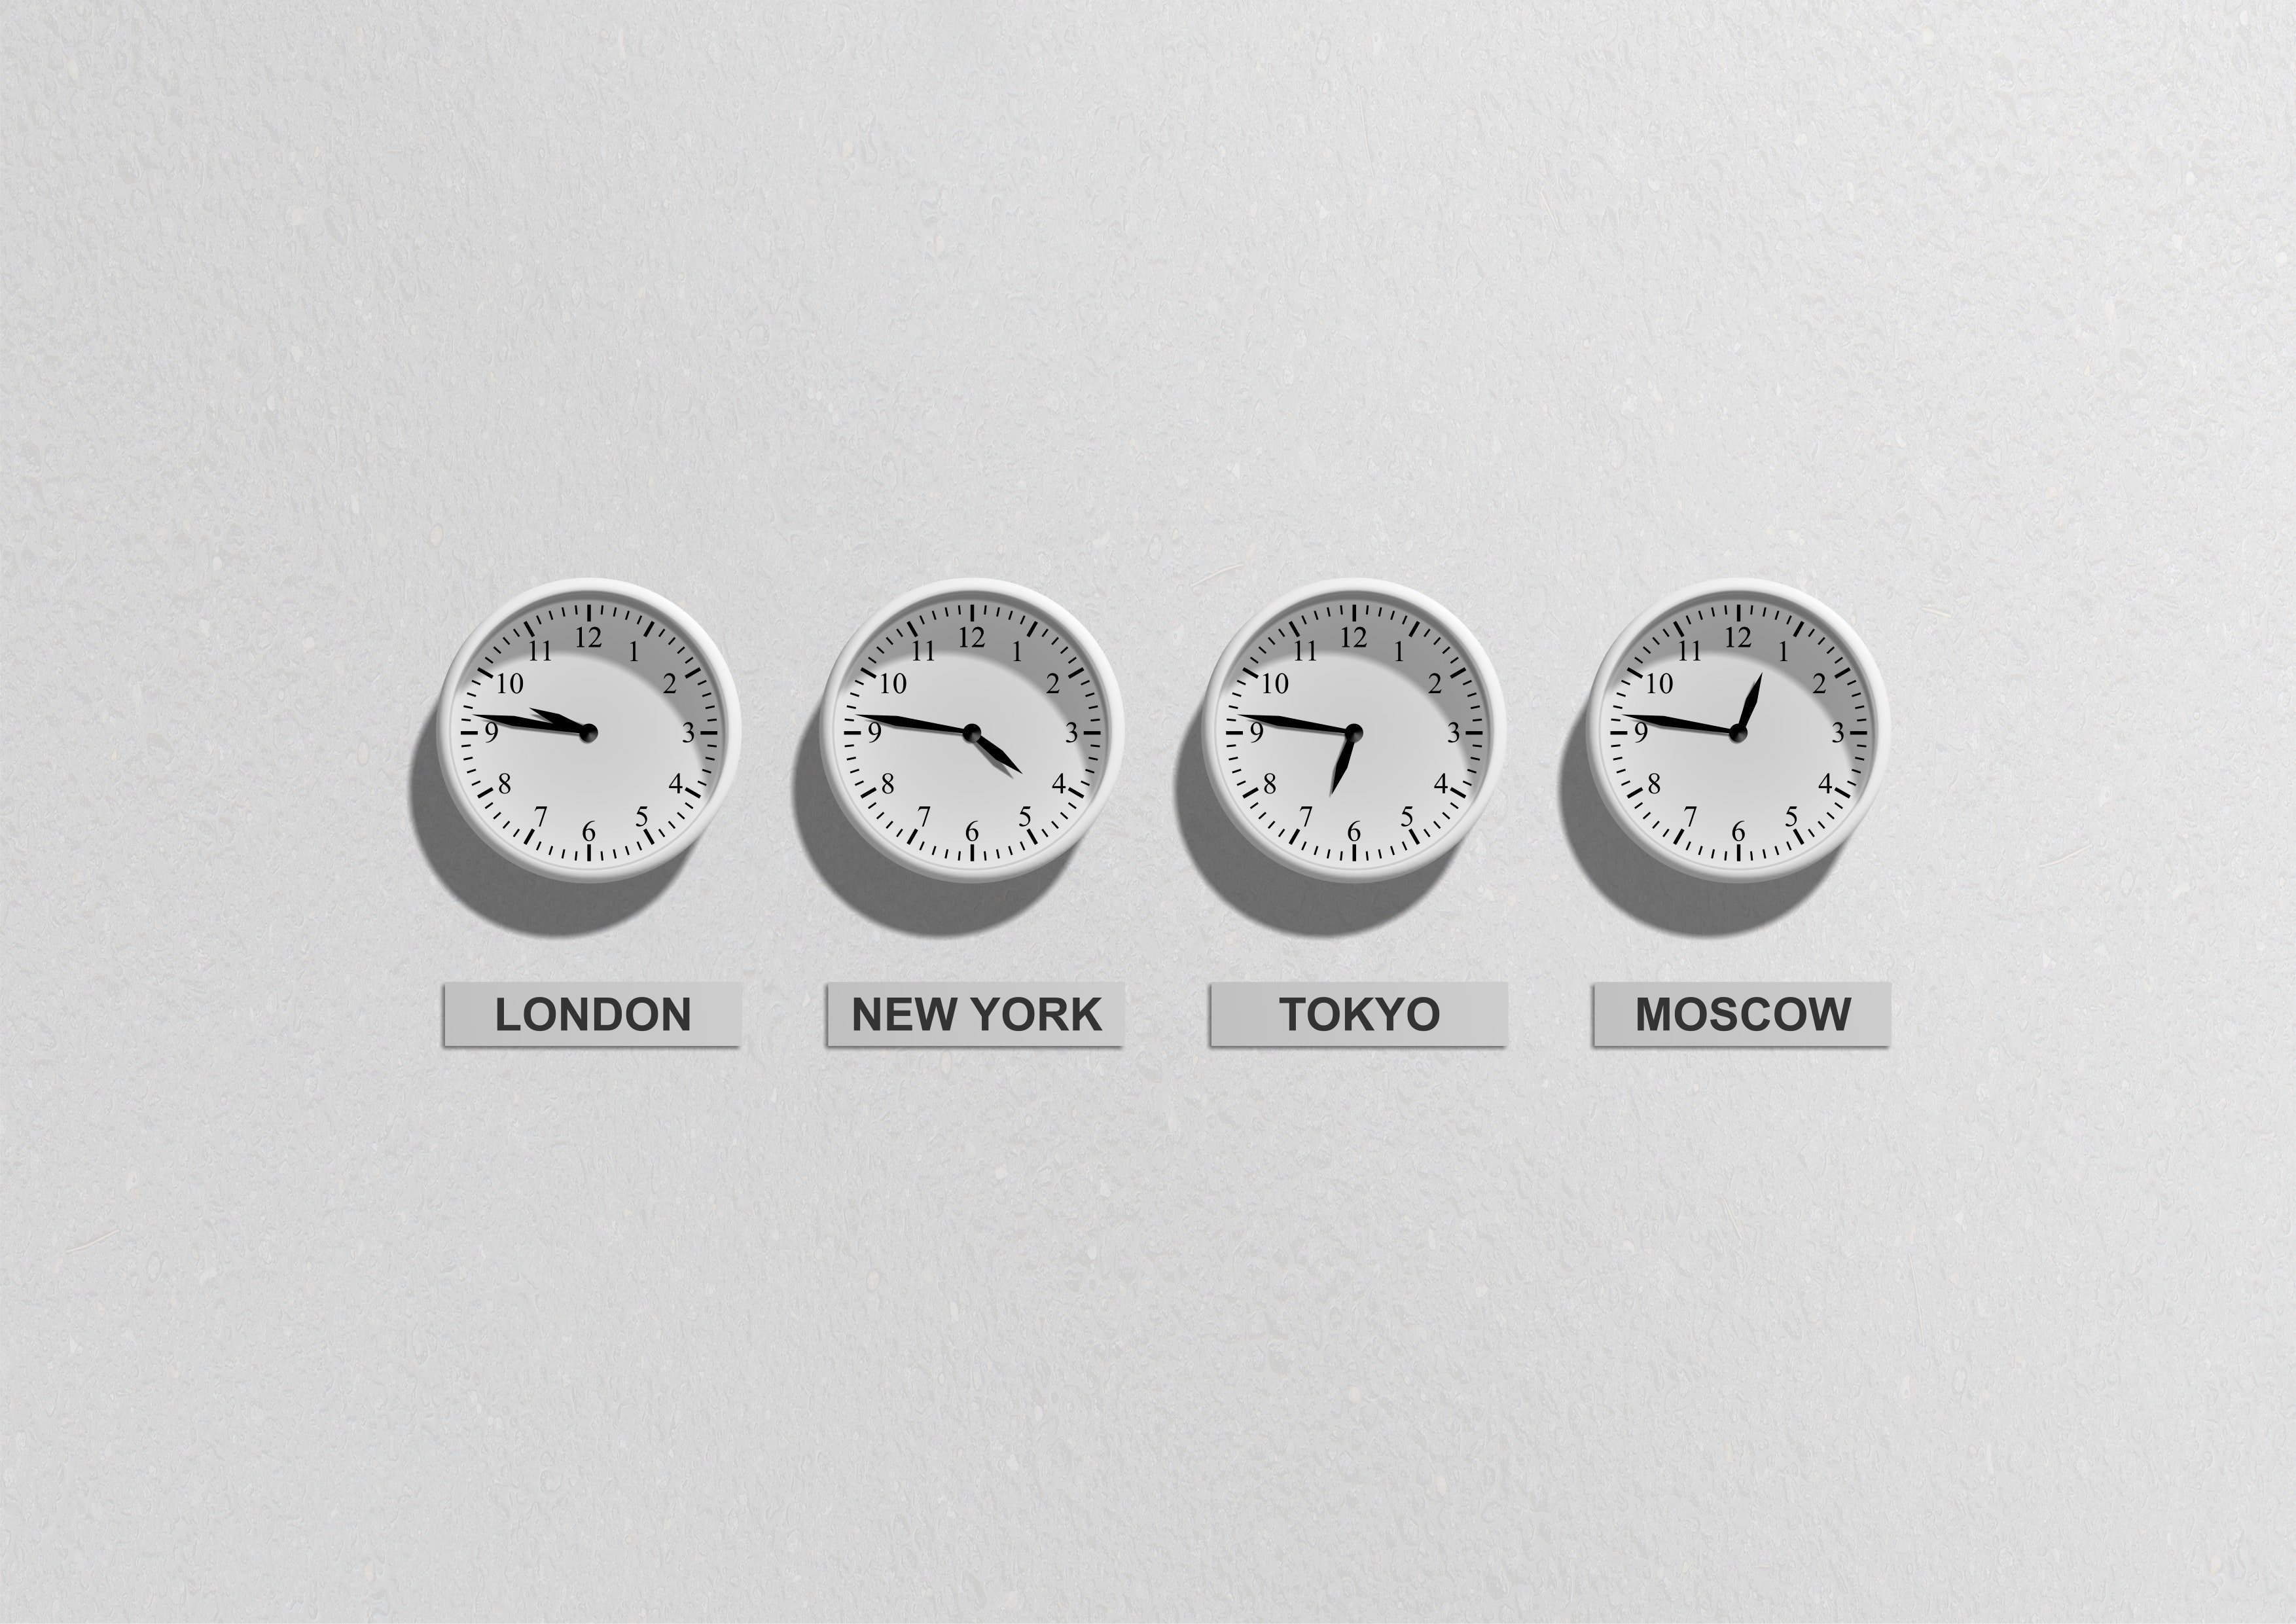 For Covid Itinerary Mgmt Page_World Clocks_8.11.20